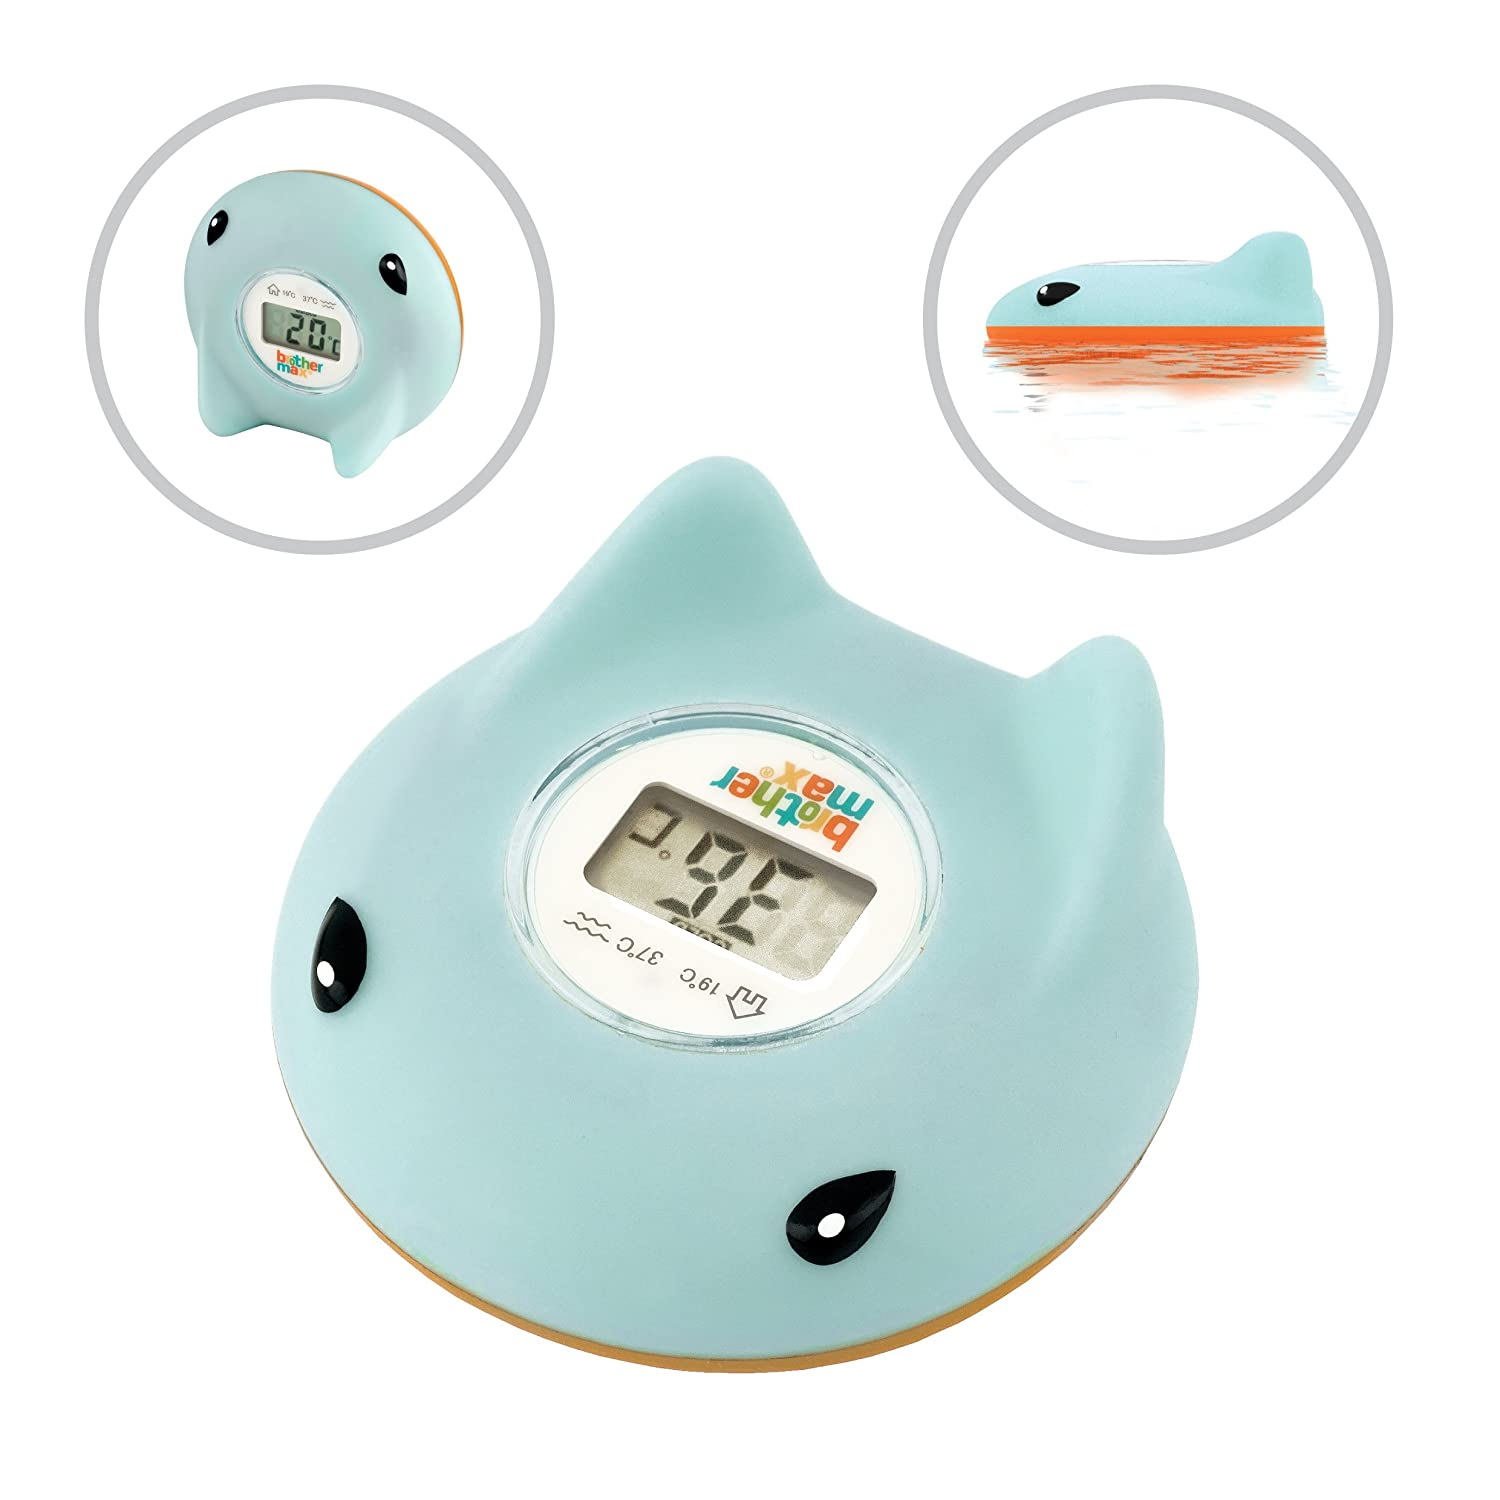 Brother Max Ray Bath and Room Thermometer: Amazon.co.uk: Baby